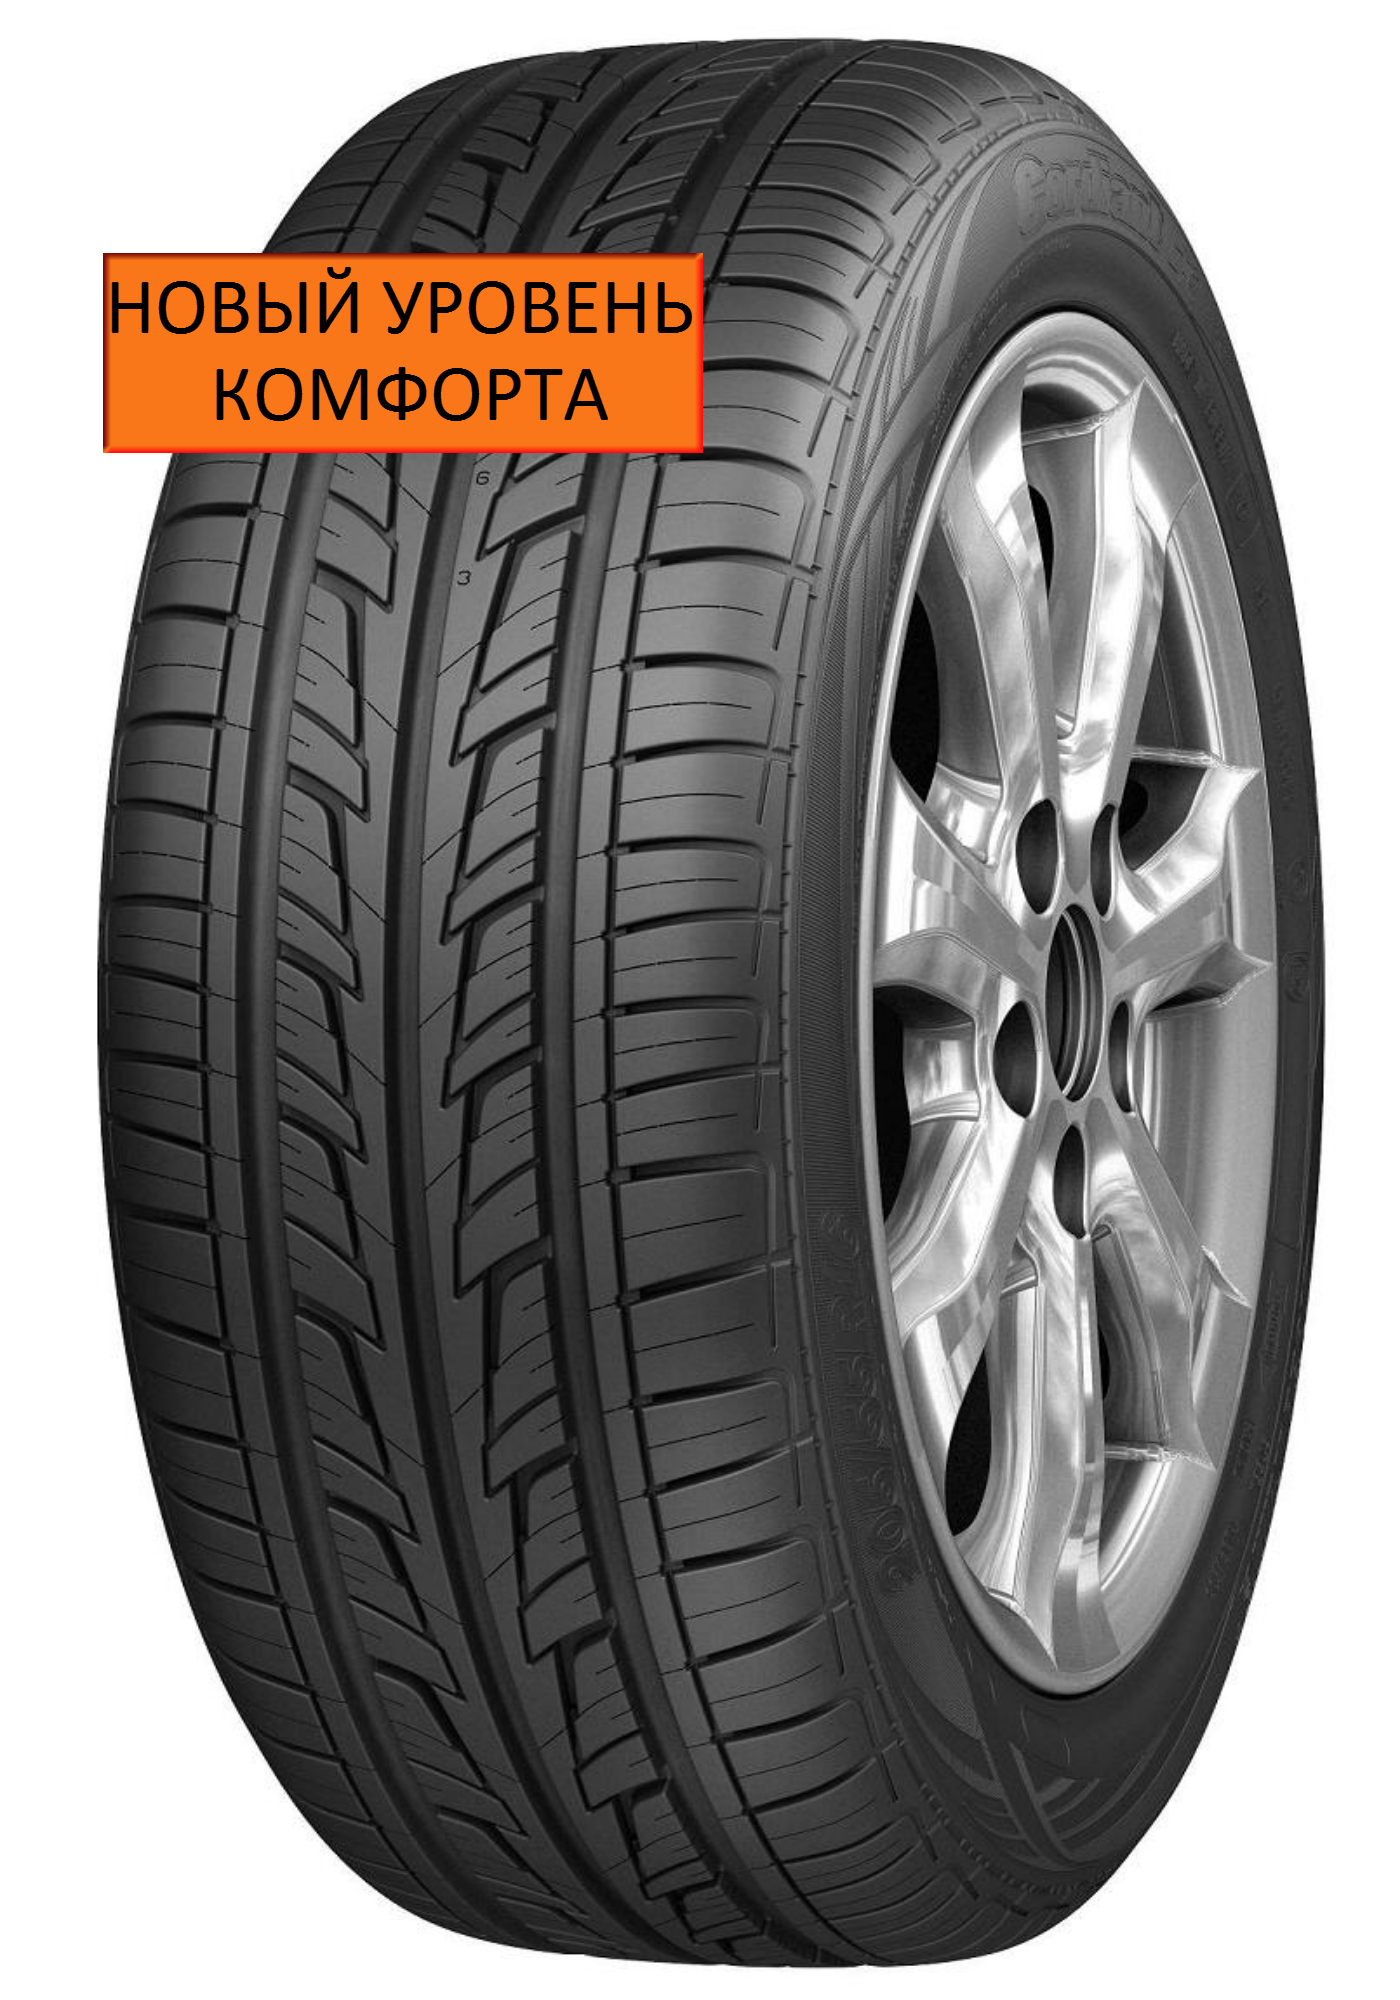 CORDIANT ROAD RUNNER PS 1 185/65 R14 86H